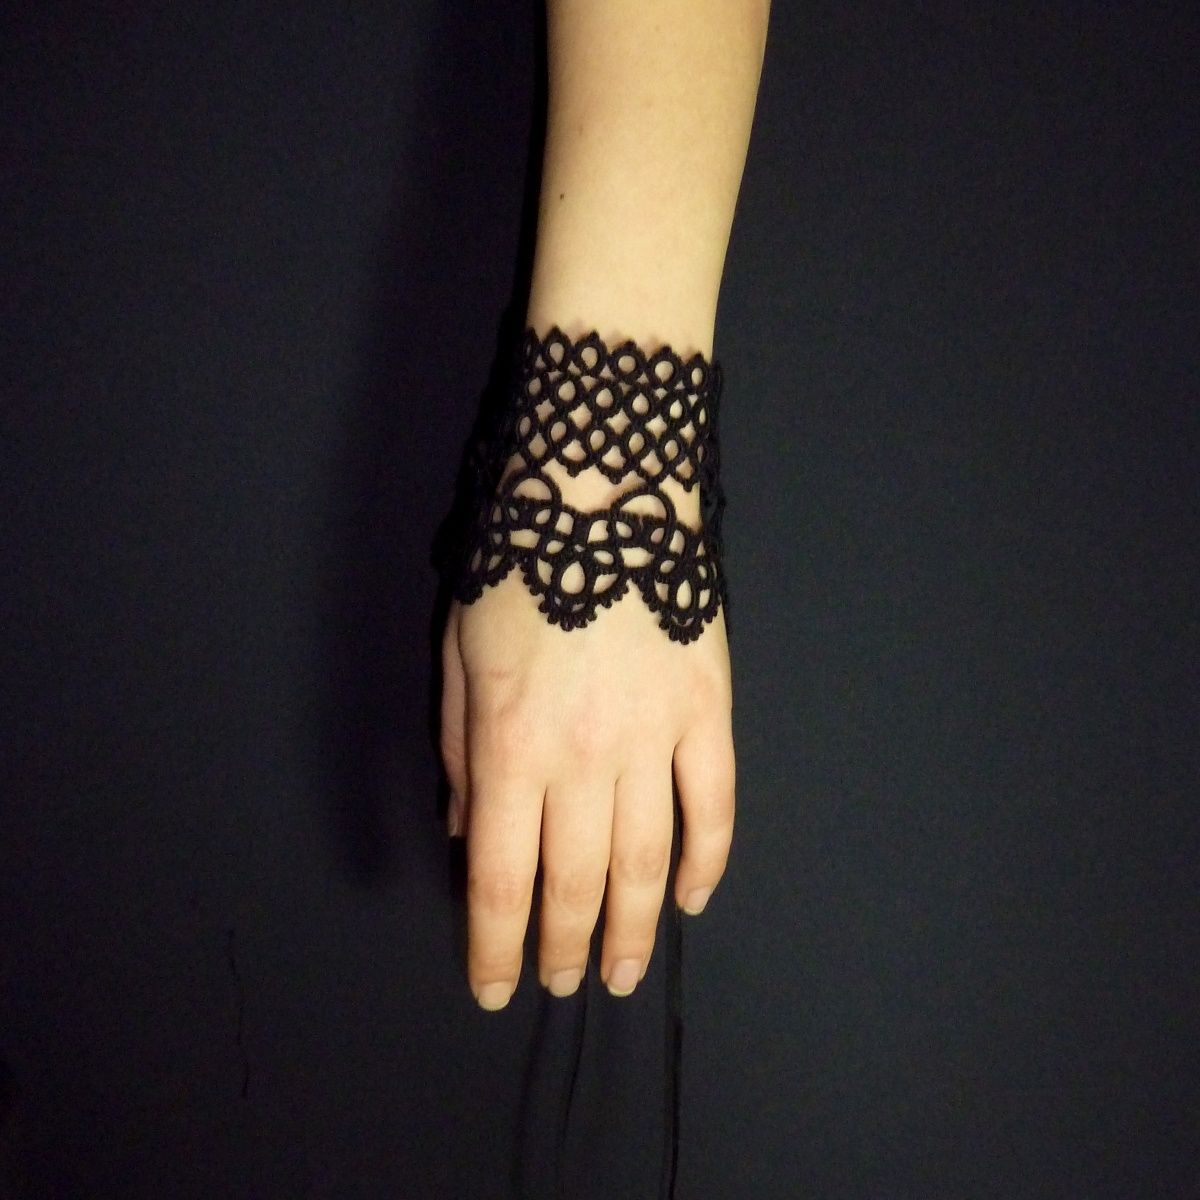 Victorian lace heart tattoos